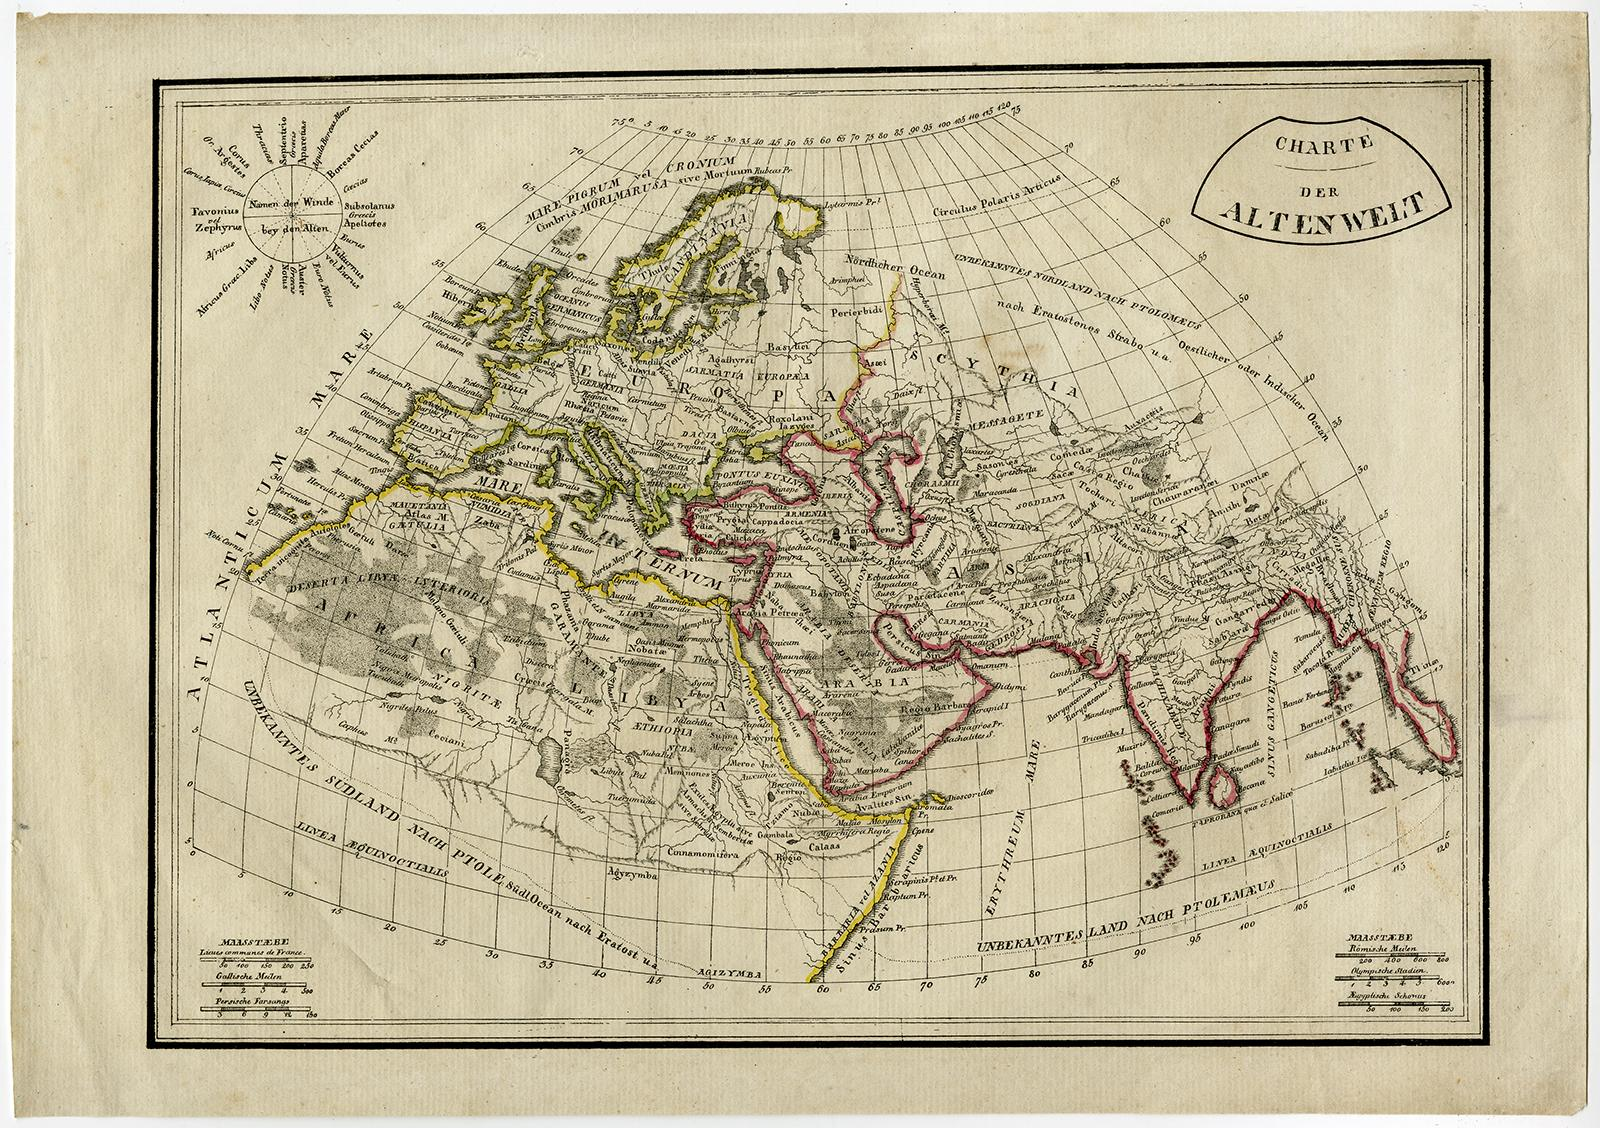 1800 Map Of The World.Antique Map Old World Europe Africa Asia 1800 Theprintscollector